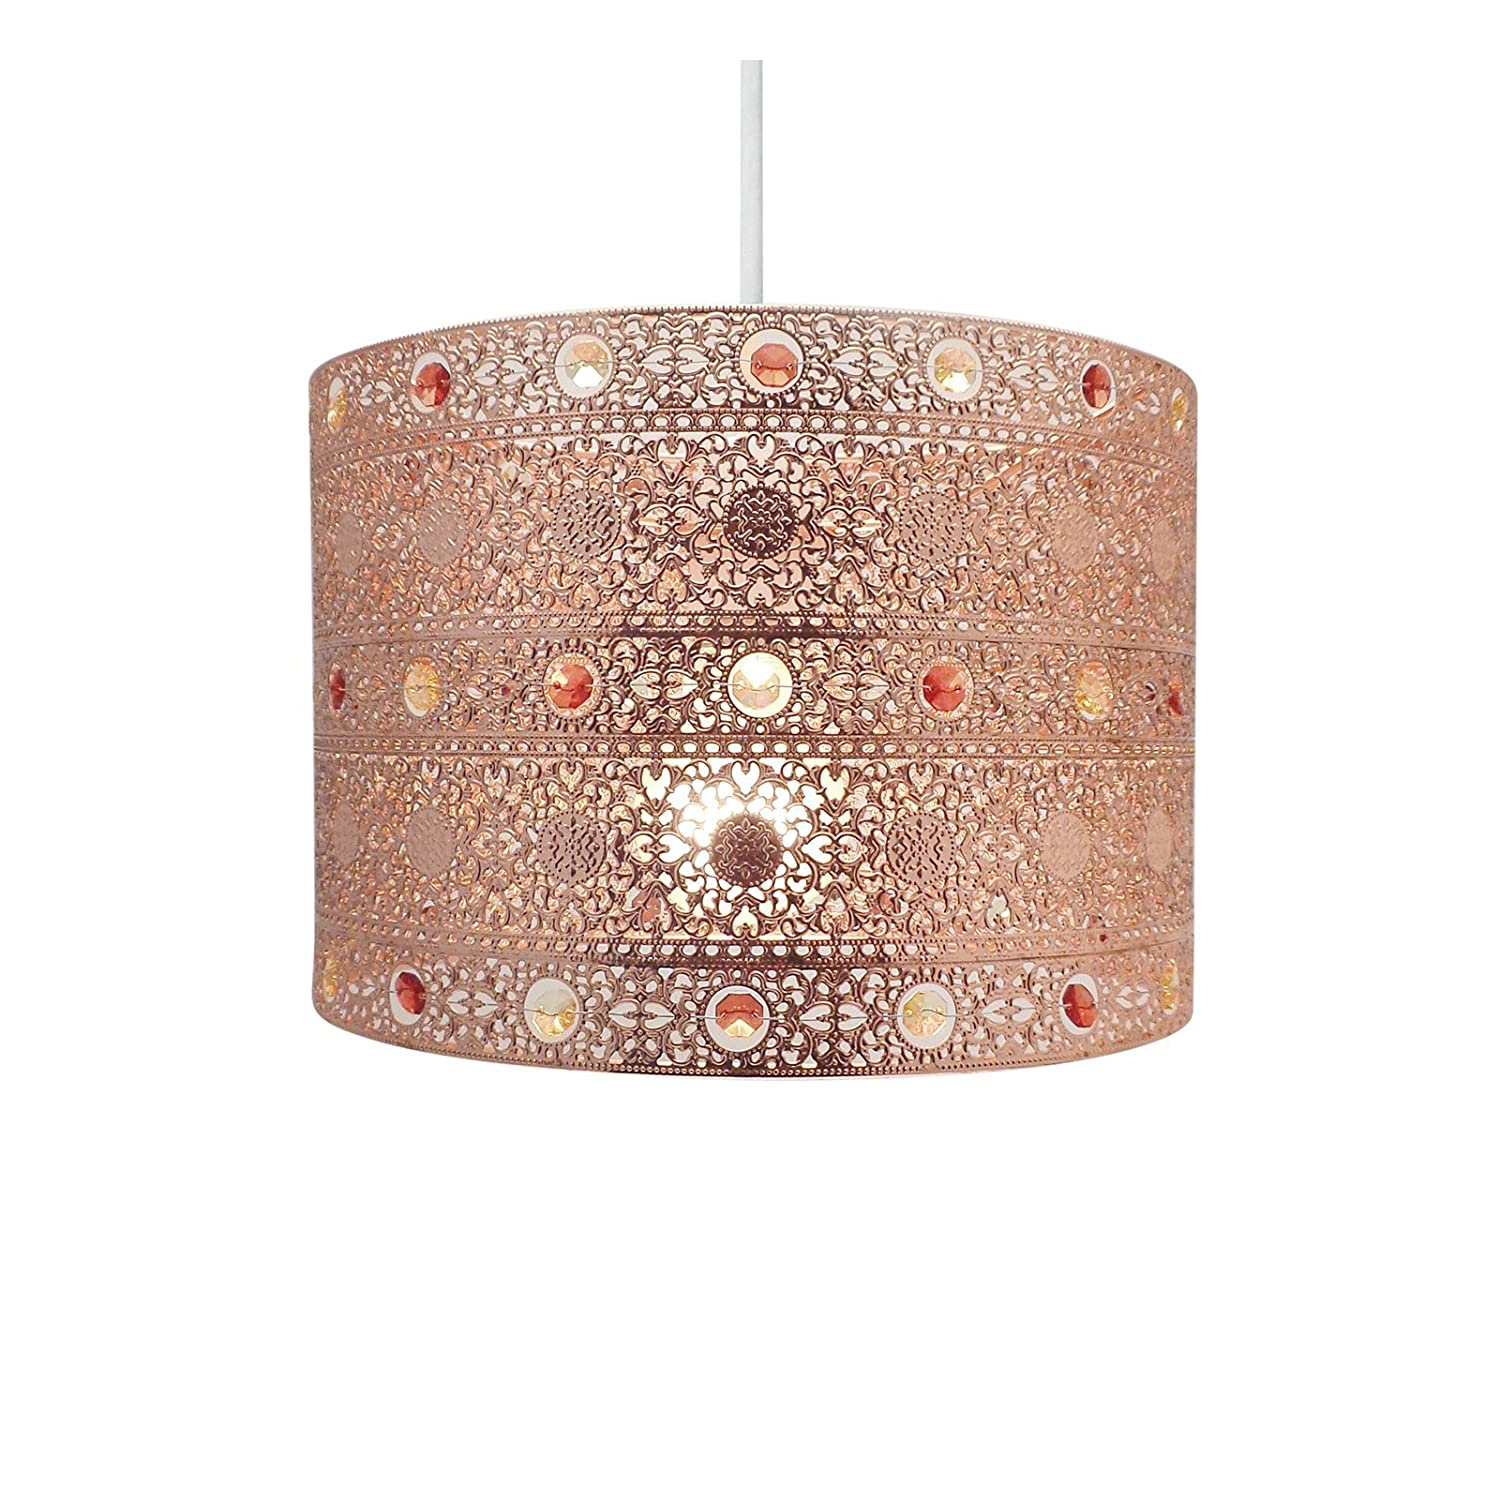 Copper gem moroccan style chandelier ceiling light shade fitting round universal copper amazon co uk lighting